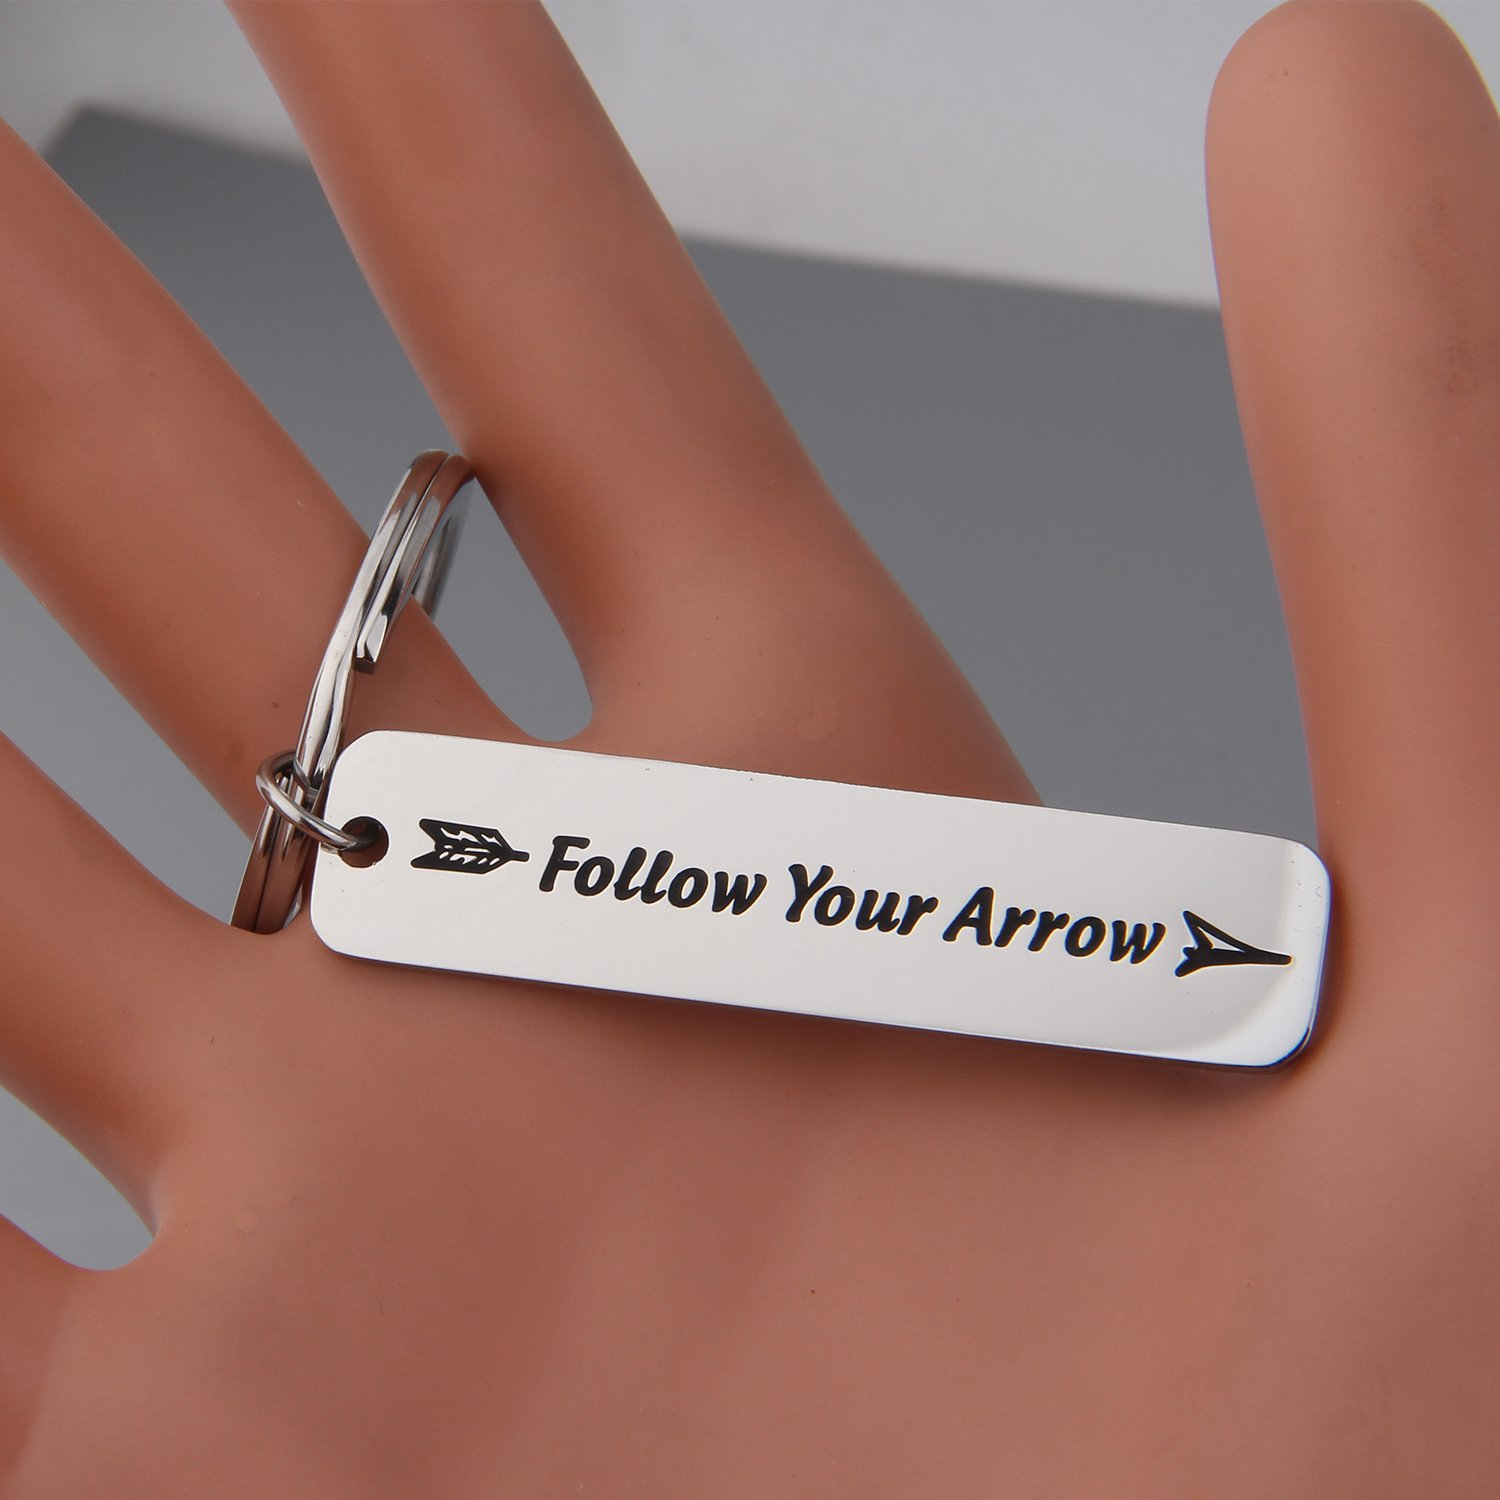 KUIYAI Follow Your Arrow Keychain Inspirational Quote Pendant Wanderlust Travel Jewelry (Keychain) by KUIYAI (Image #5)